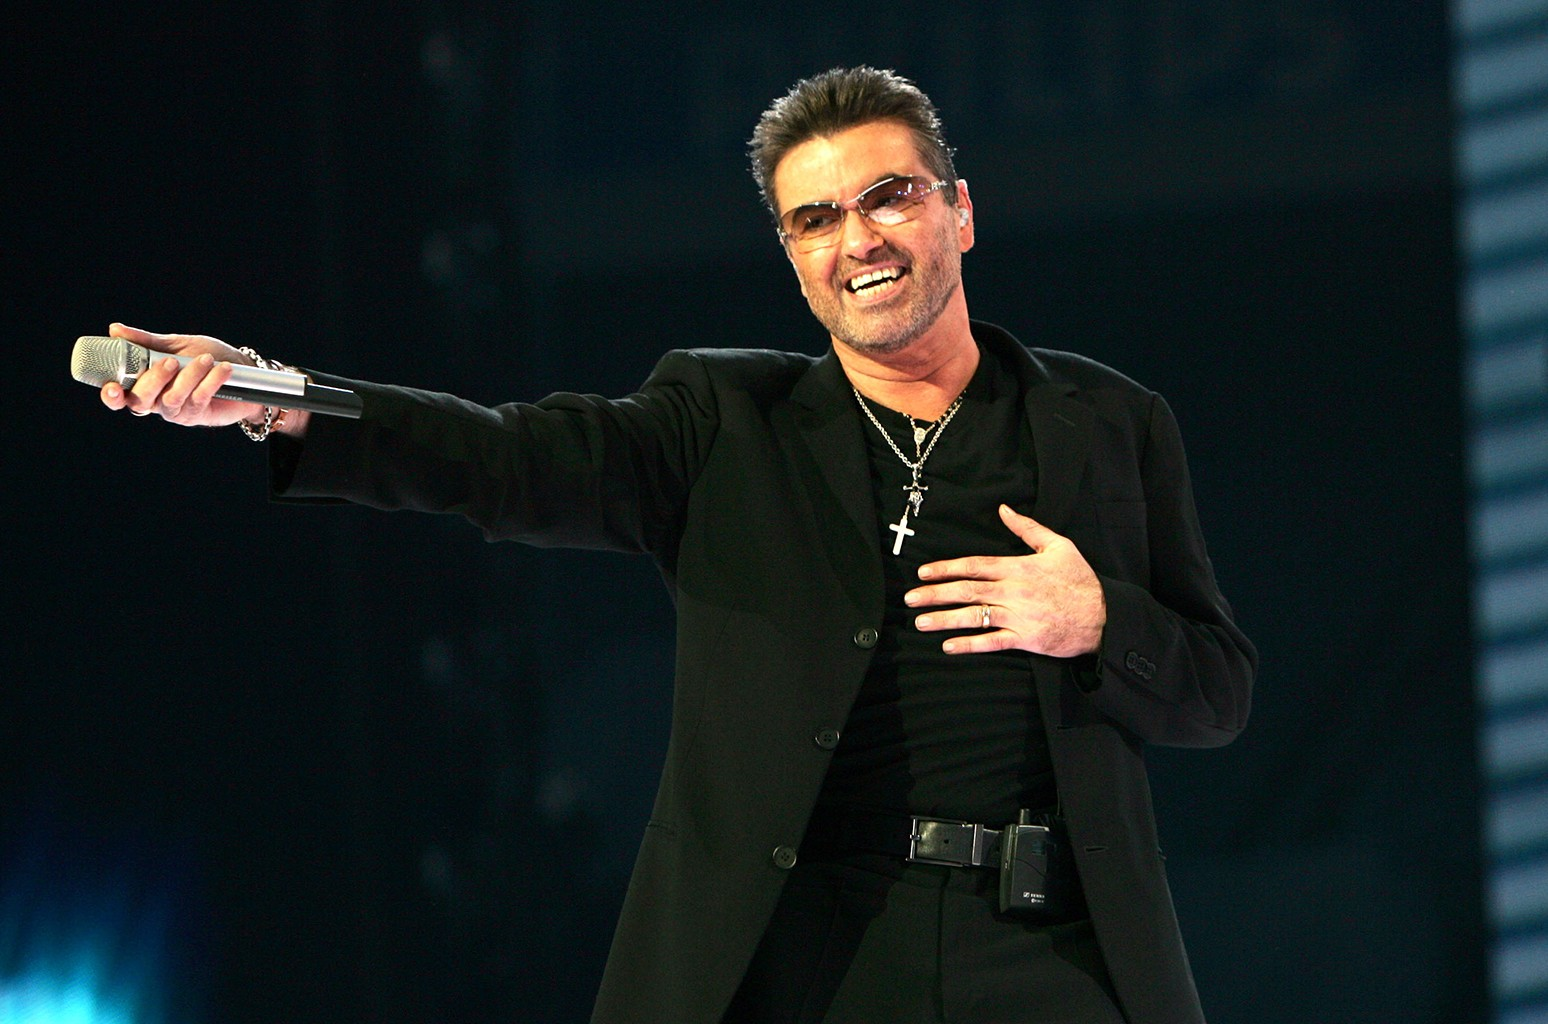 George Michael performs at the Arena on June 26, 2007 in Amsterdam.